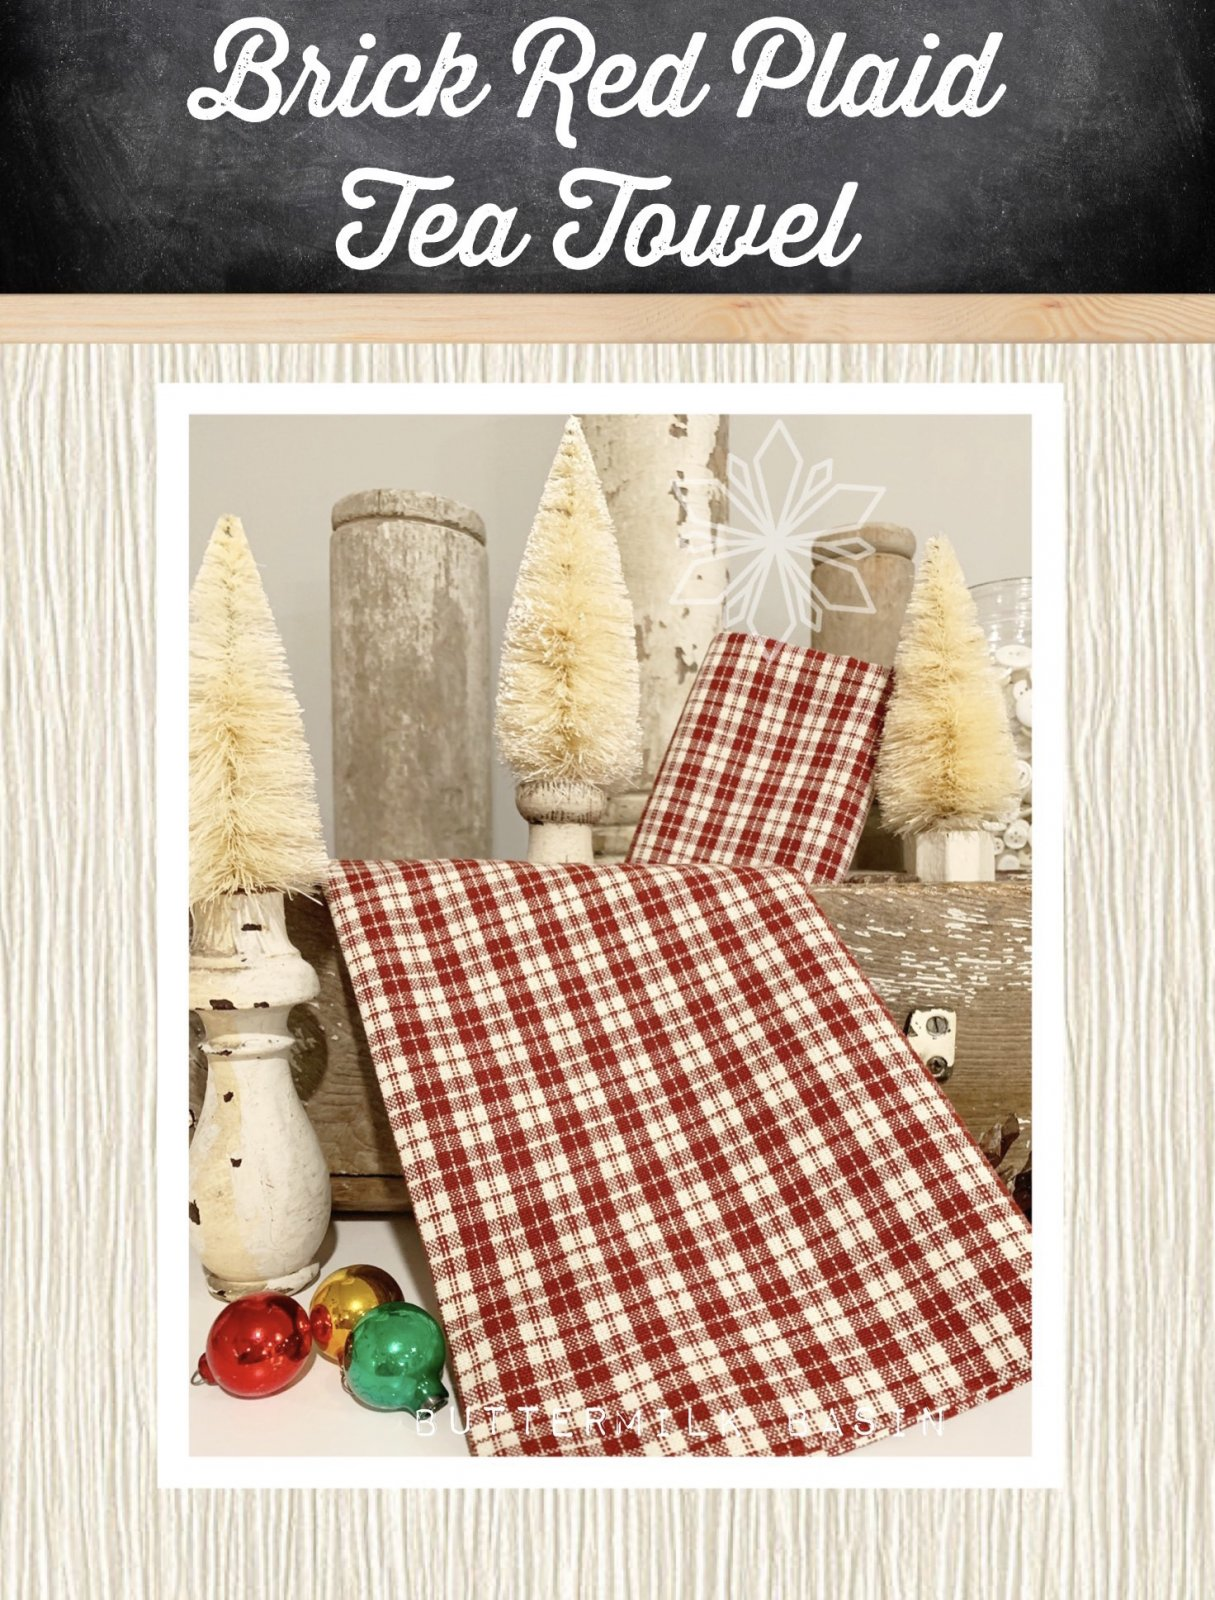 Brick Red Plaid Tea Towel